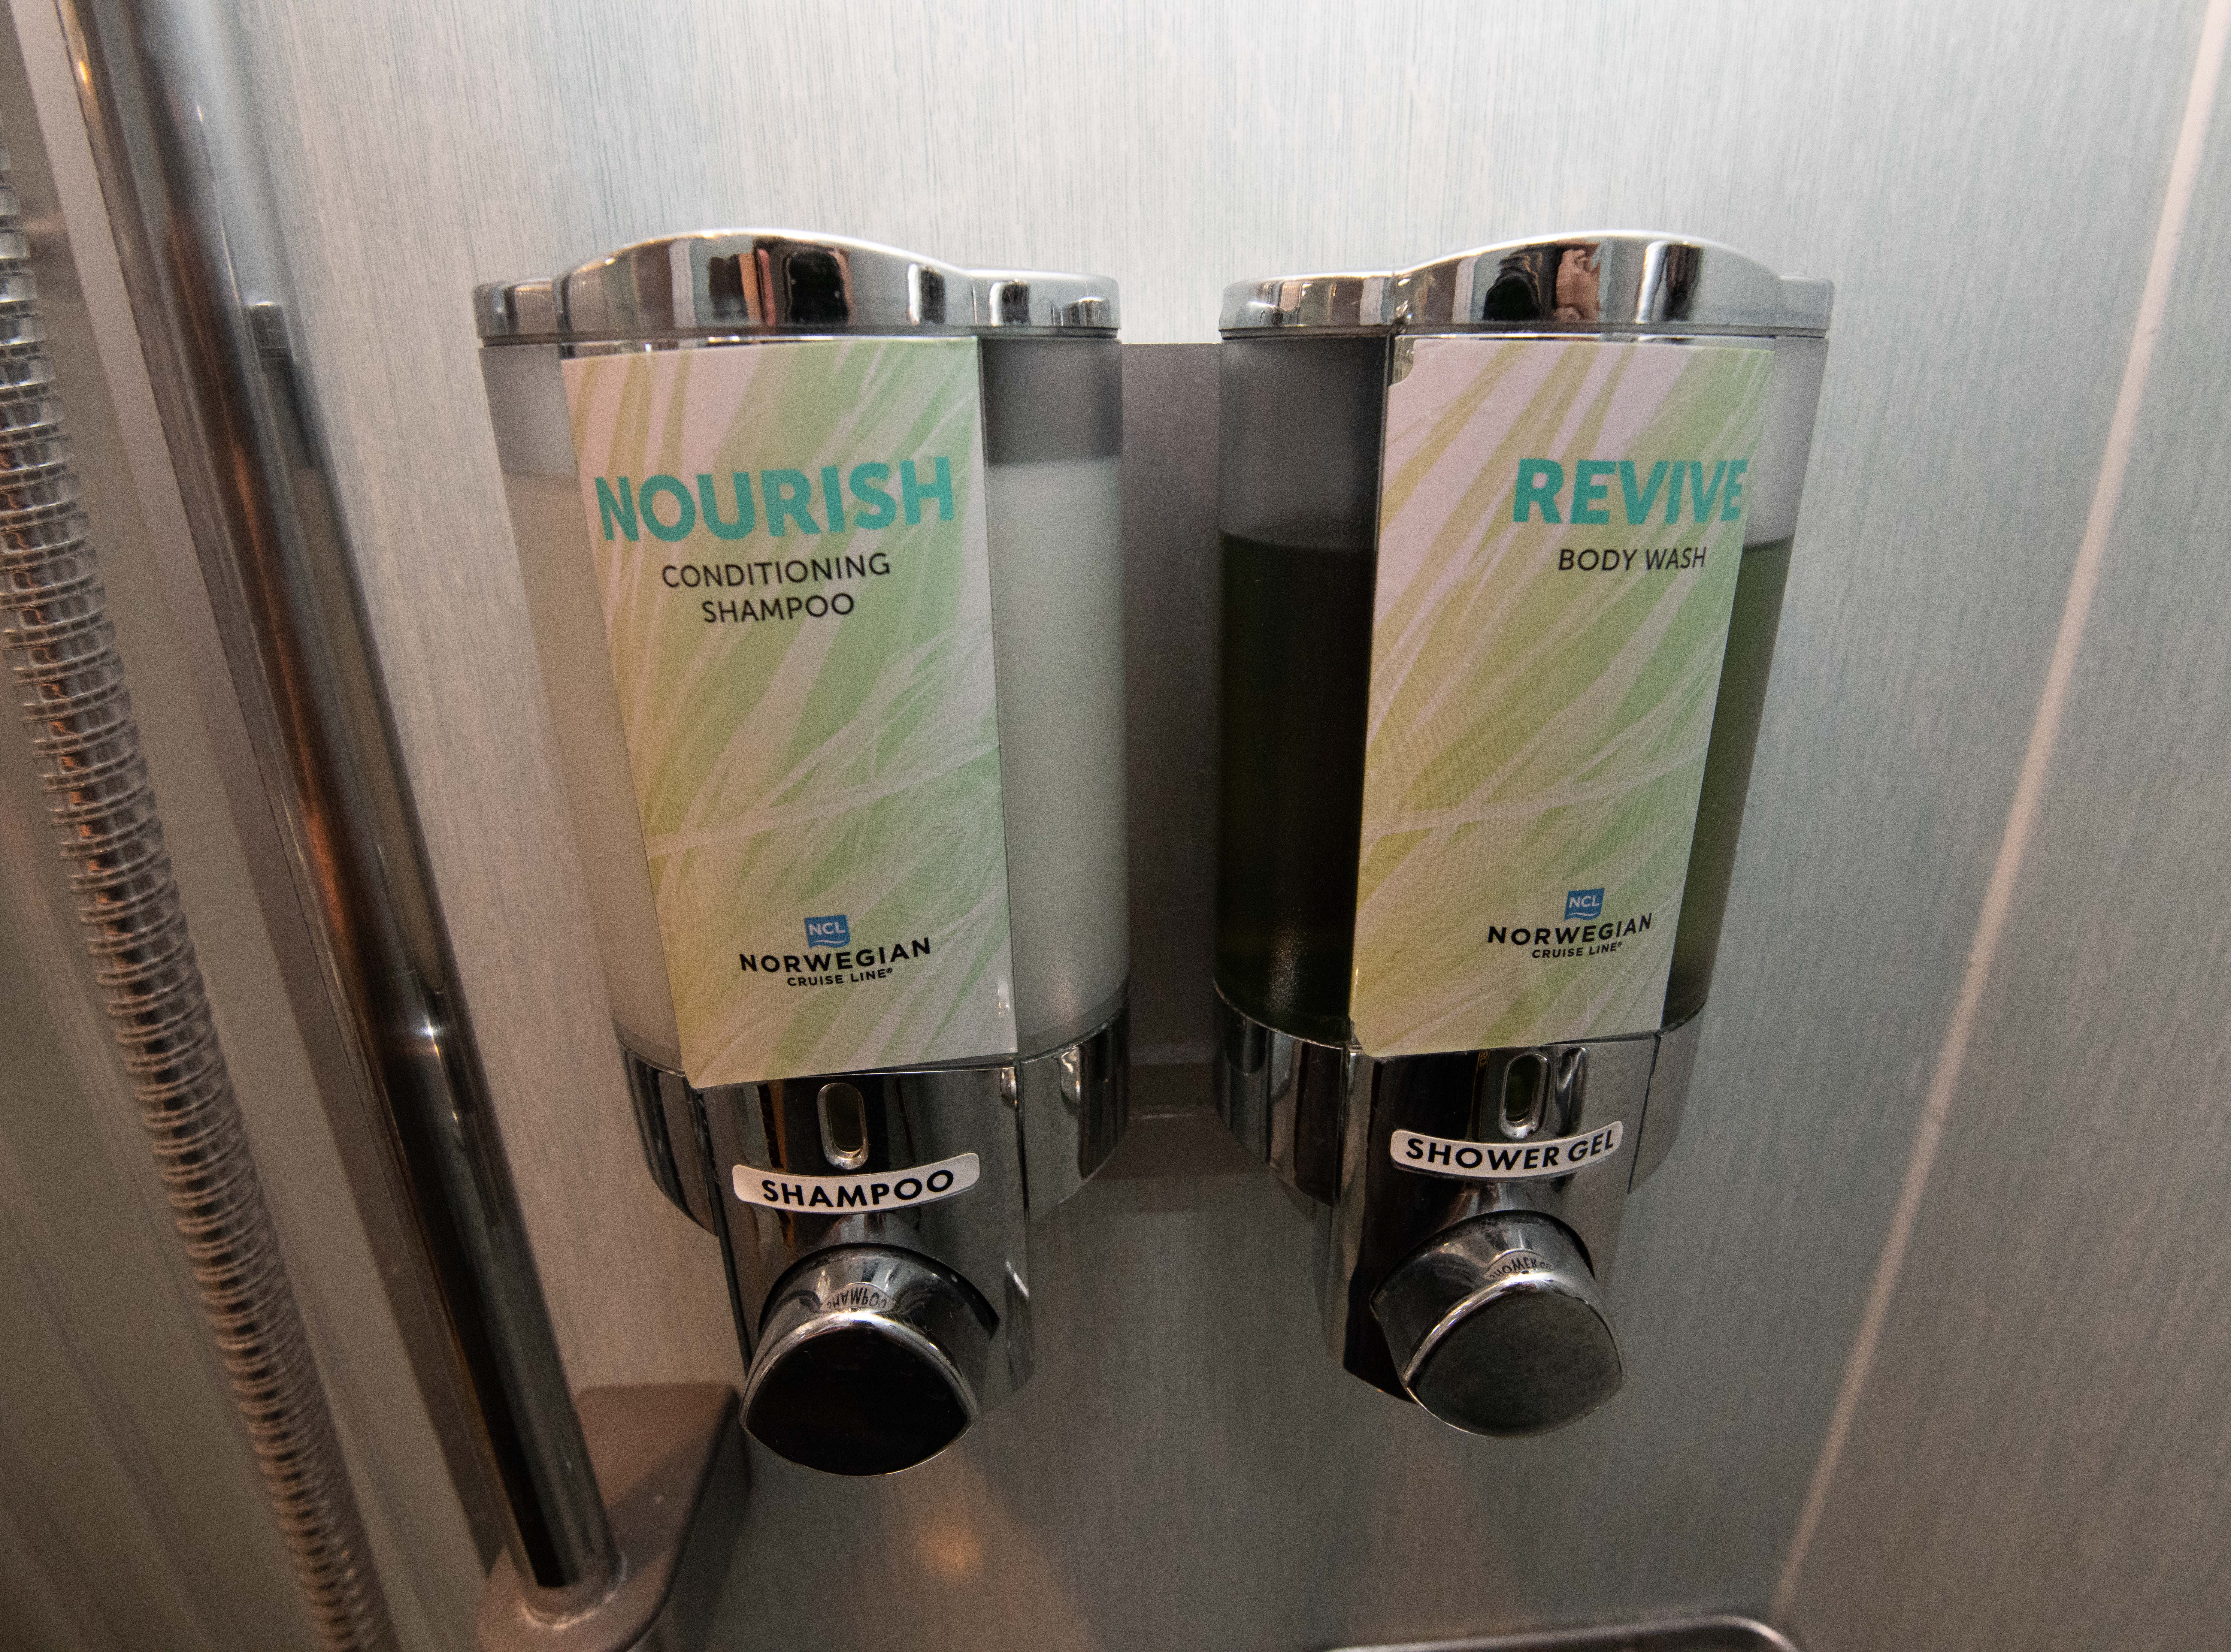 Large dispensers in the showers in Pride of America cabins are filled with body wash and shampoo.